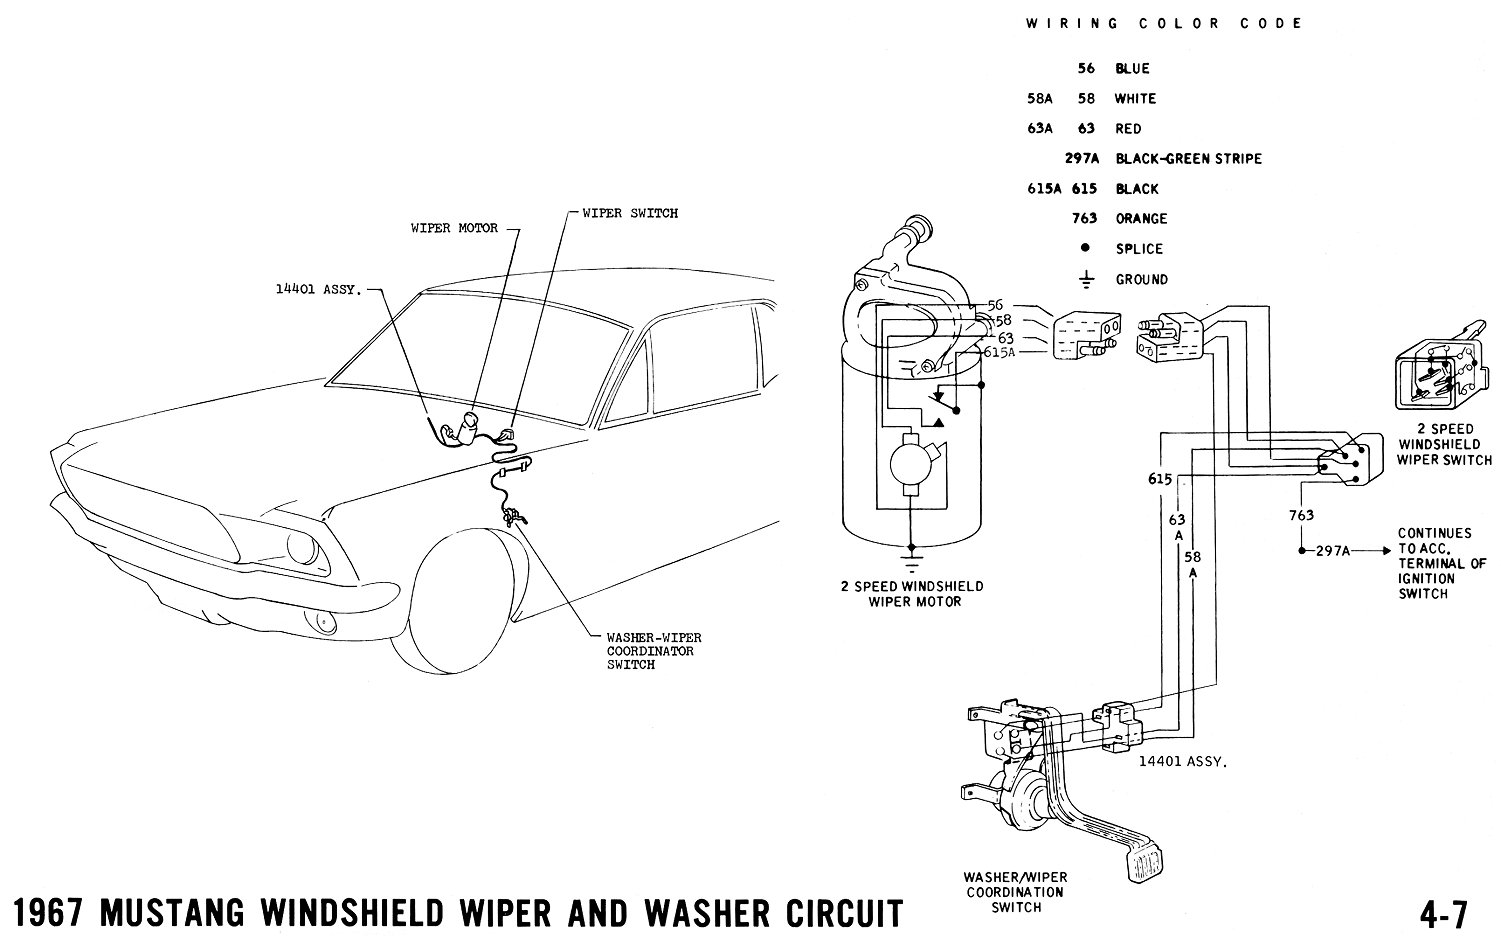 Honda Wiper Switch Wiring Diagram Library Controller Circuit Diagrams Windshield Wipers Wire The Pictorial And Schematic